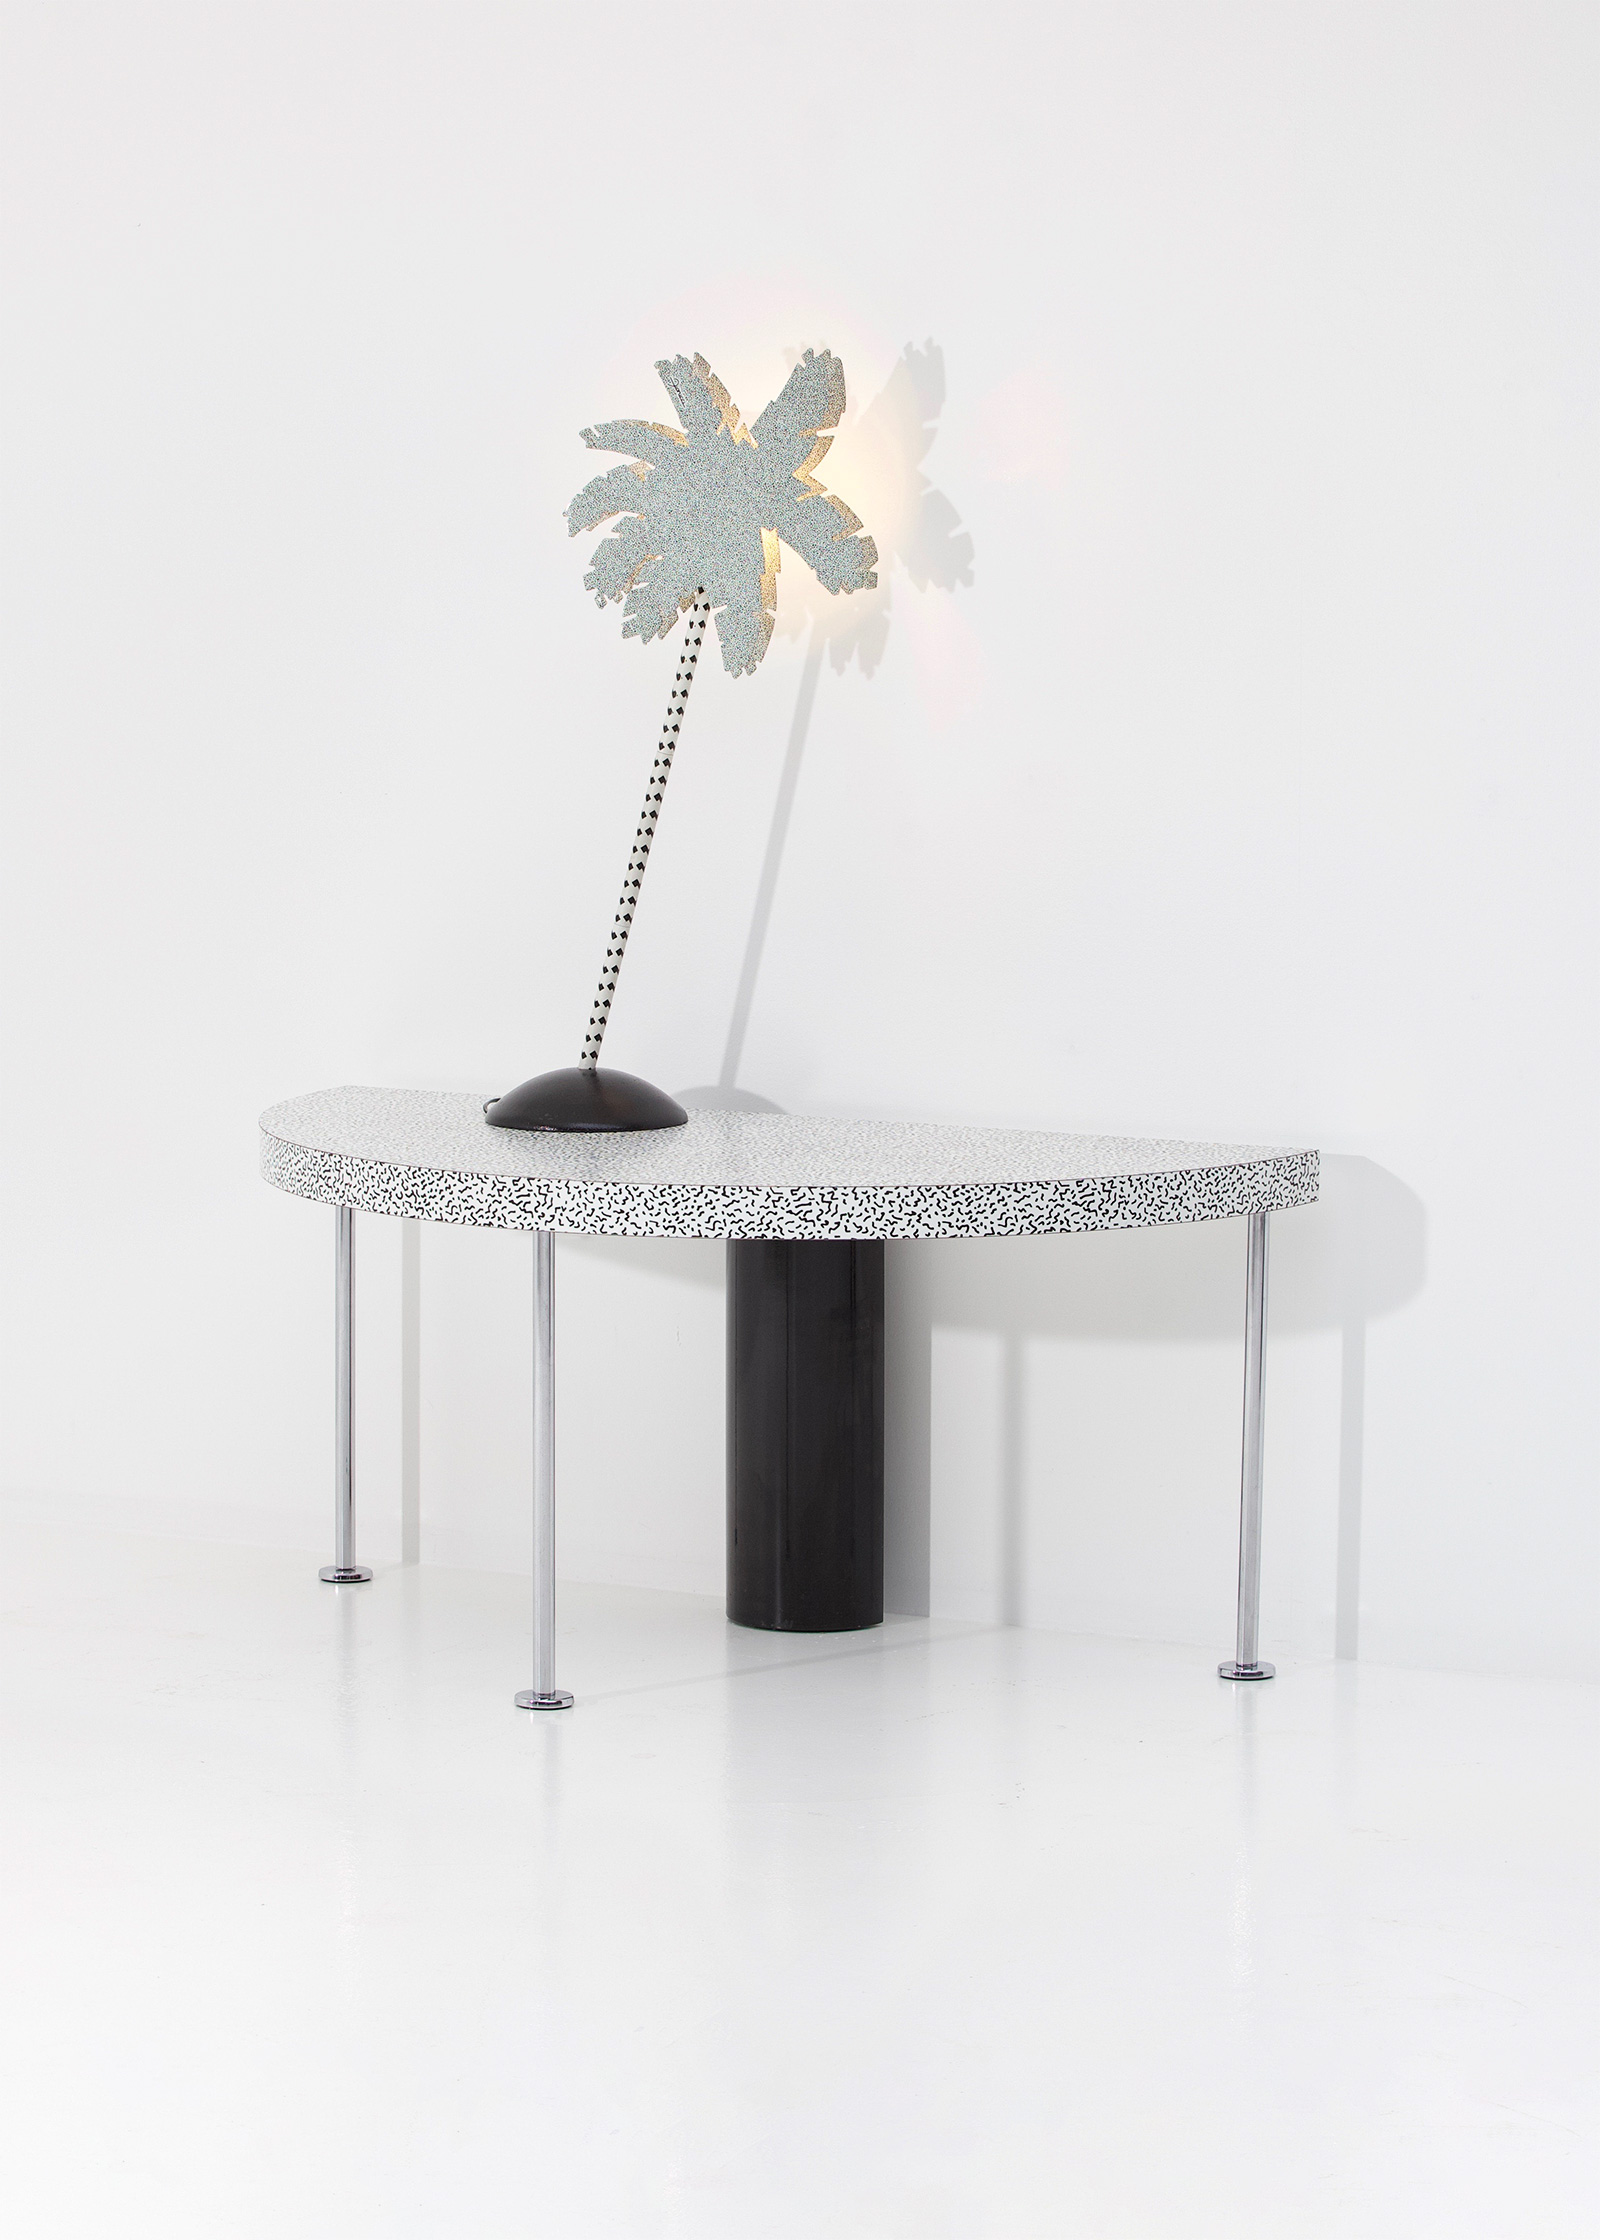 Ettore Sottsass Side Table for Zanottaimage 1